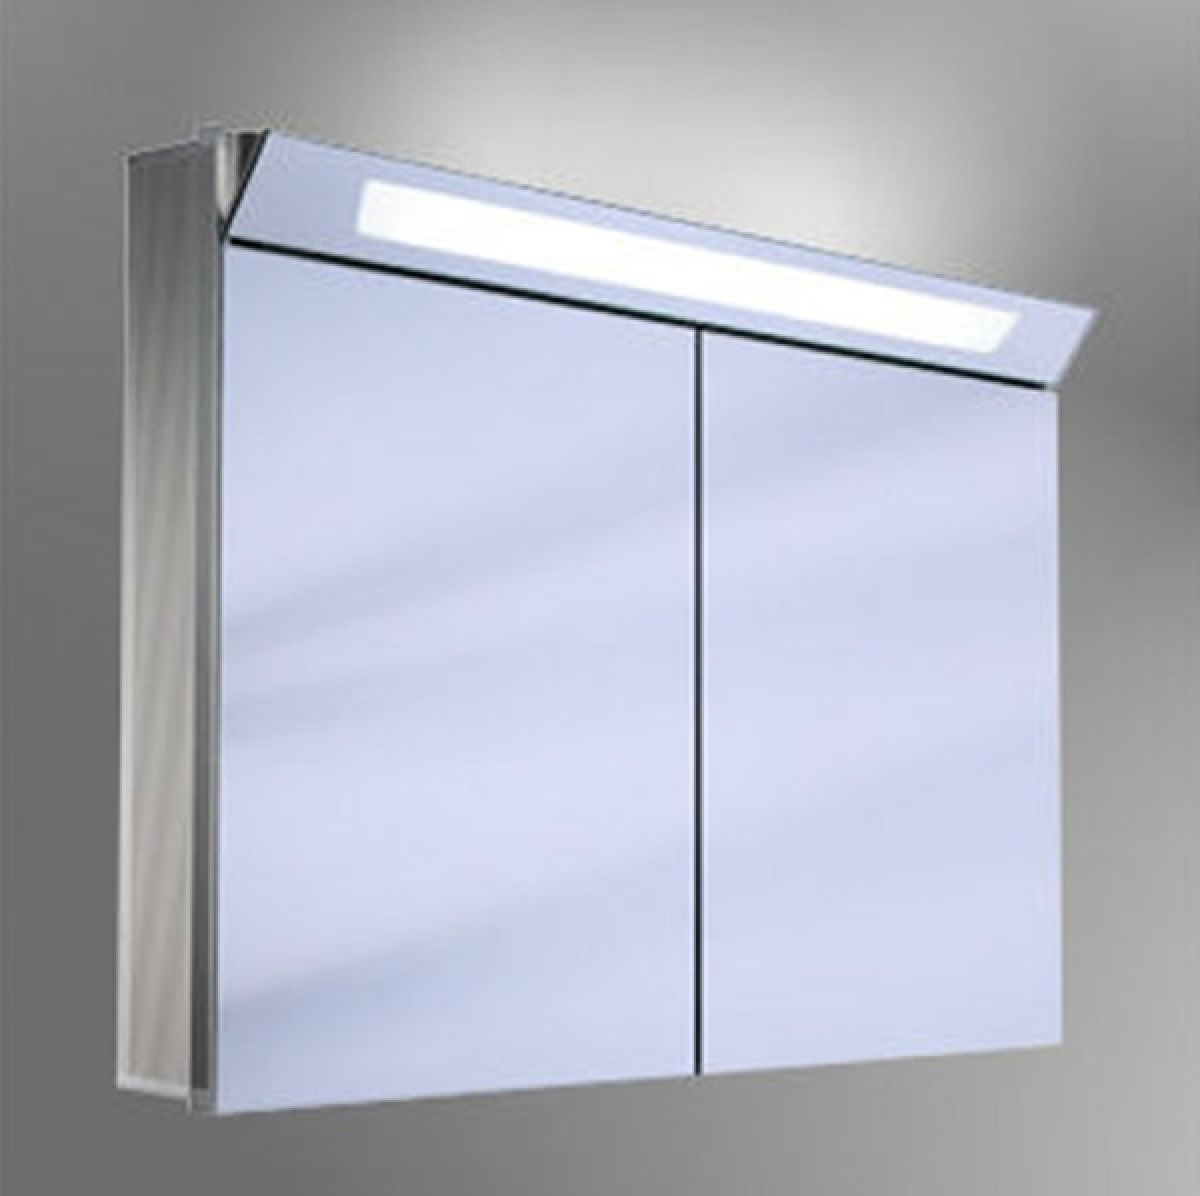 Schneider Capeline Illuminated Bathroom Mirror Cabinet Uk Bathrooms